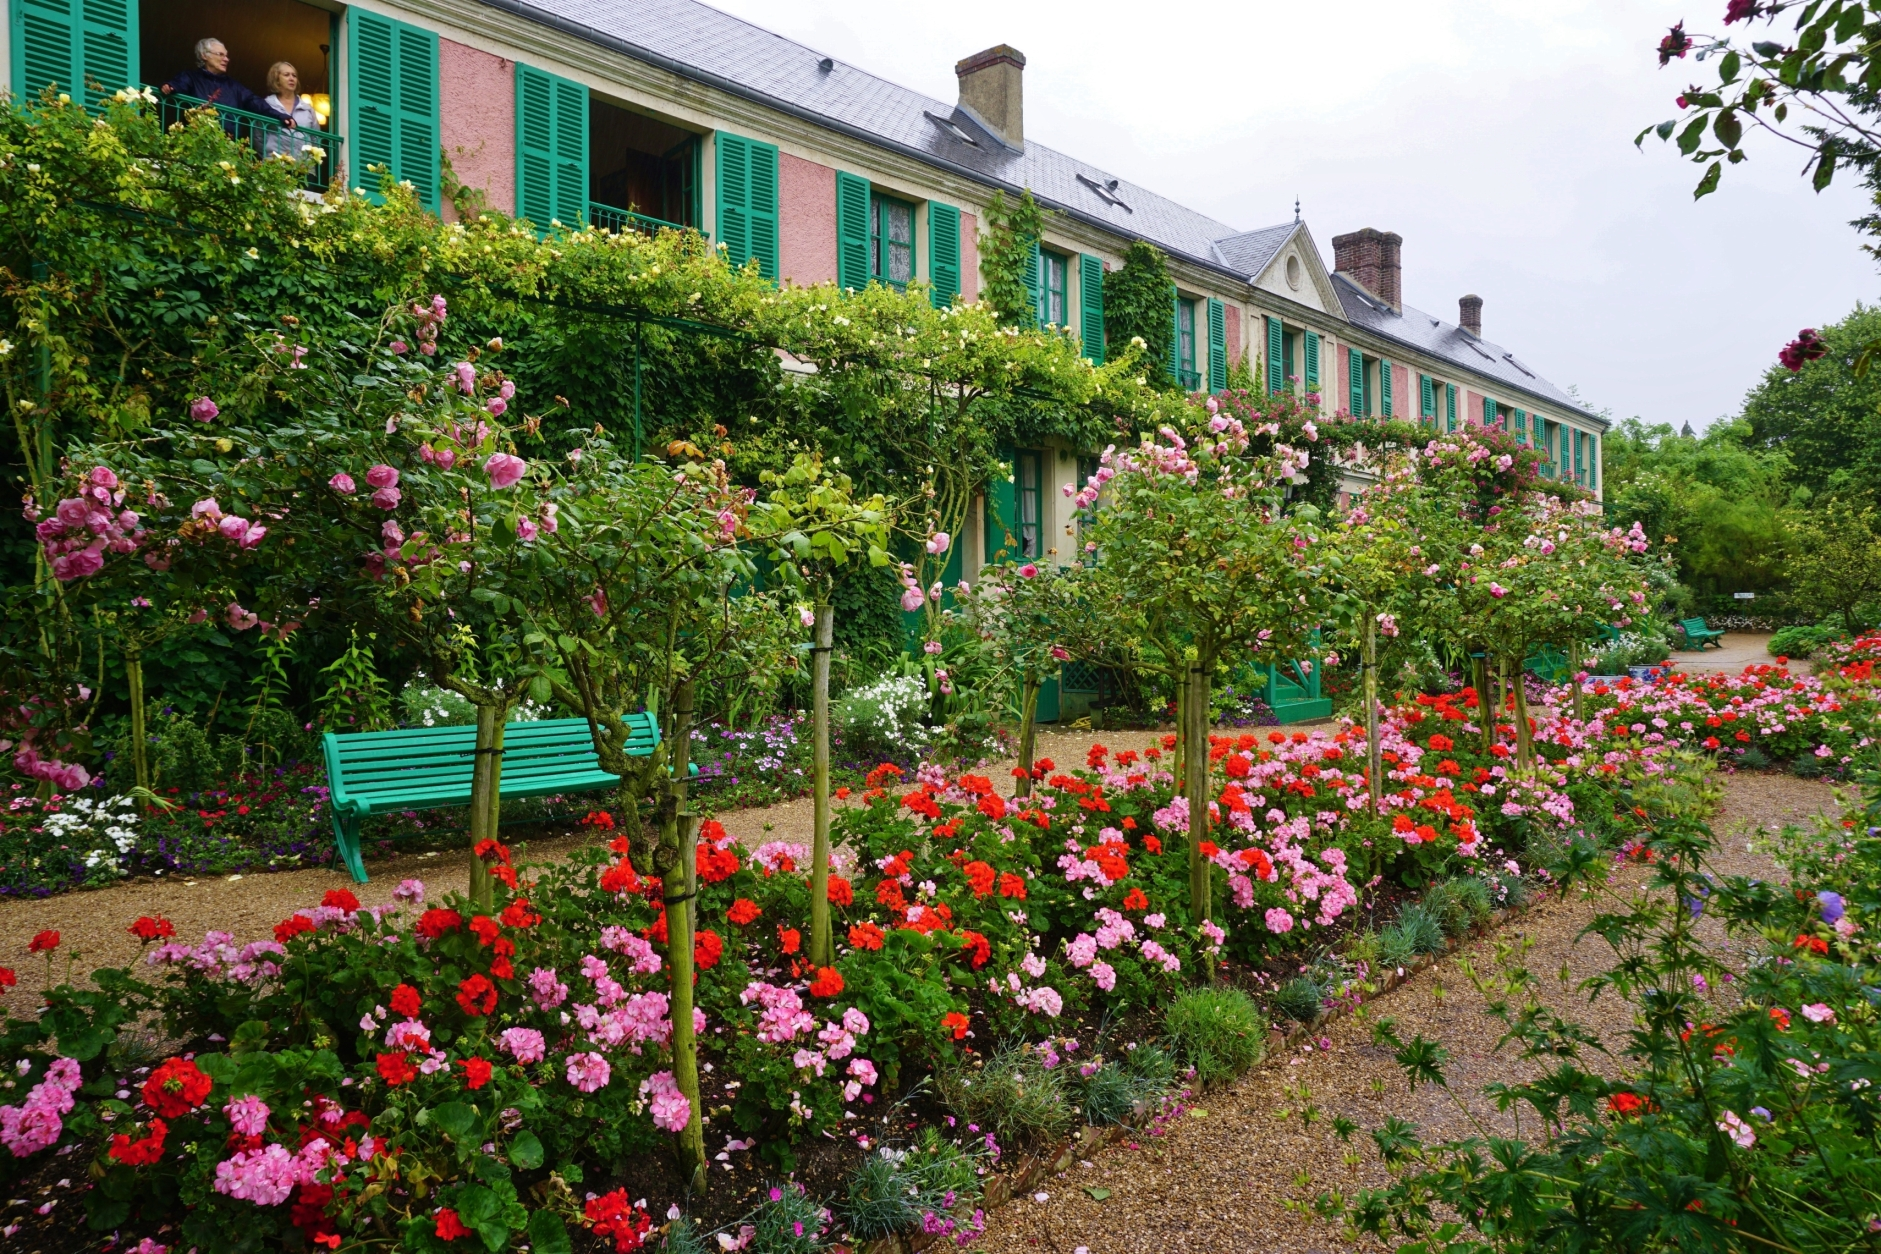 Maison et Jardins de Claude Monet | Giverny, France Giverny ...